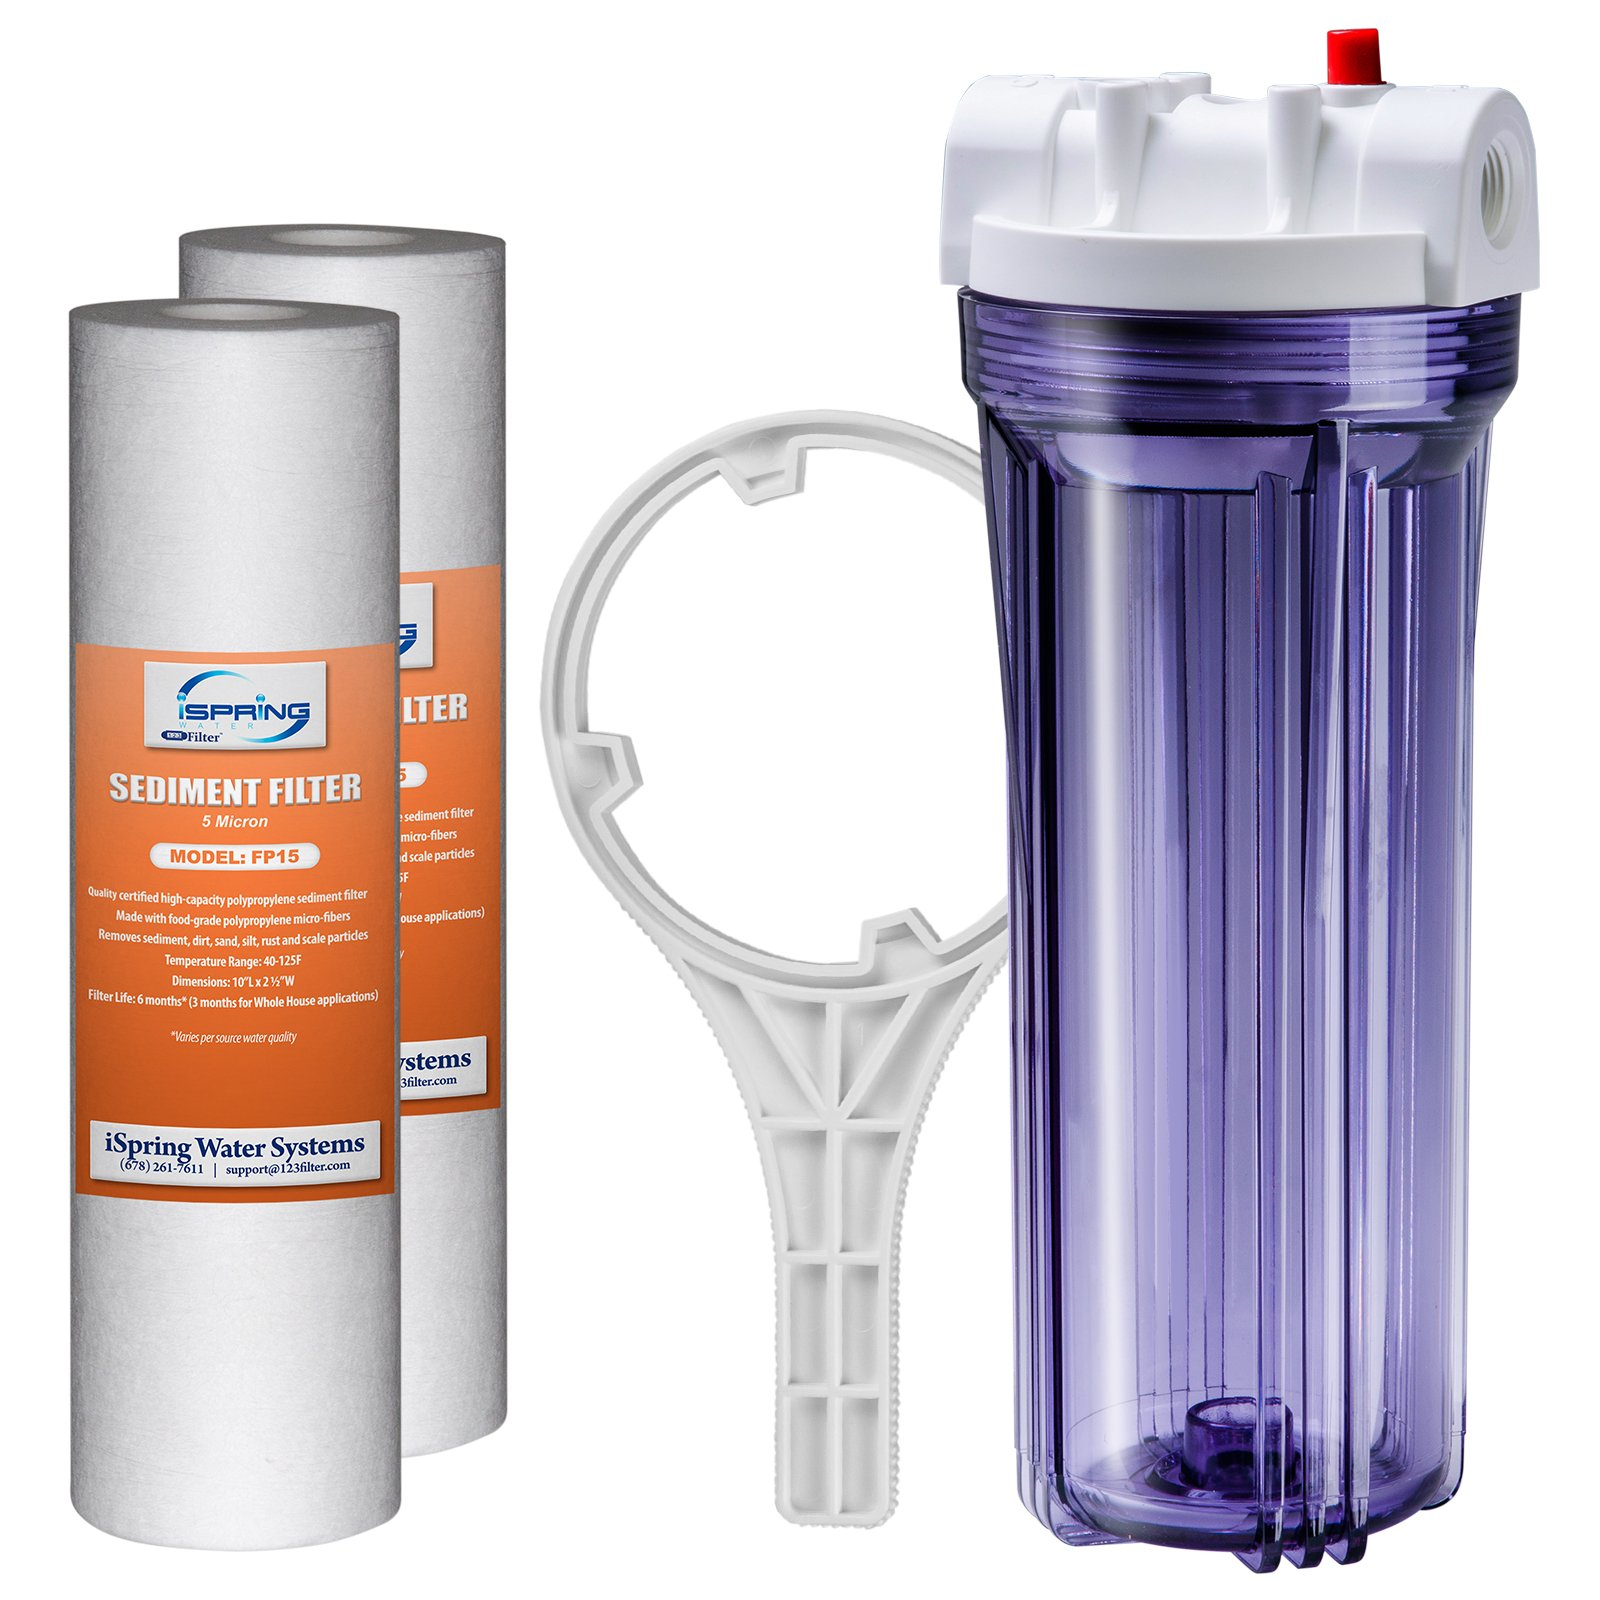 iSpring HC14+ FP15X2 Whole House Transparent Water Filter Housing 10'' x FNPT Inlet/Outlet with 2 PP Filters (5 Micron), 1/2'', Clear